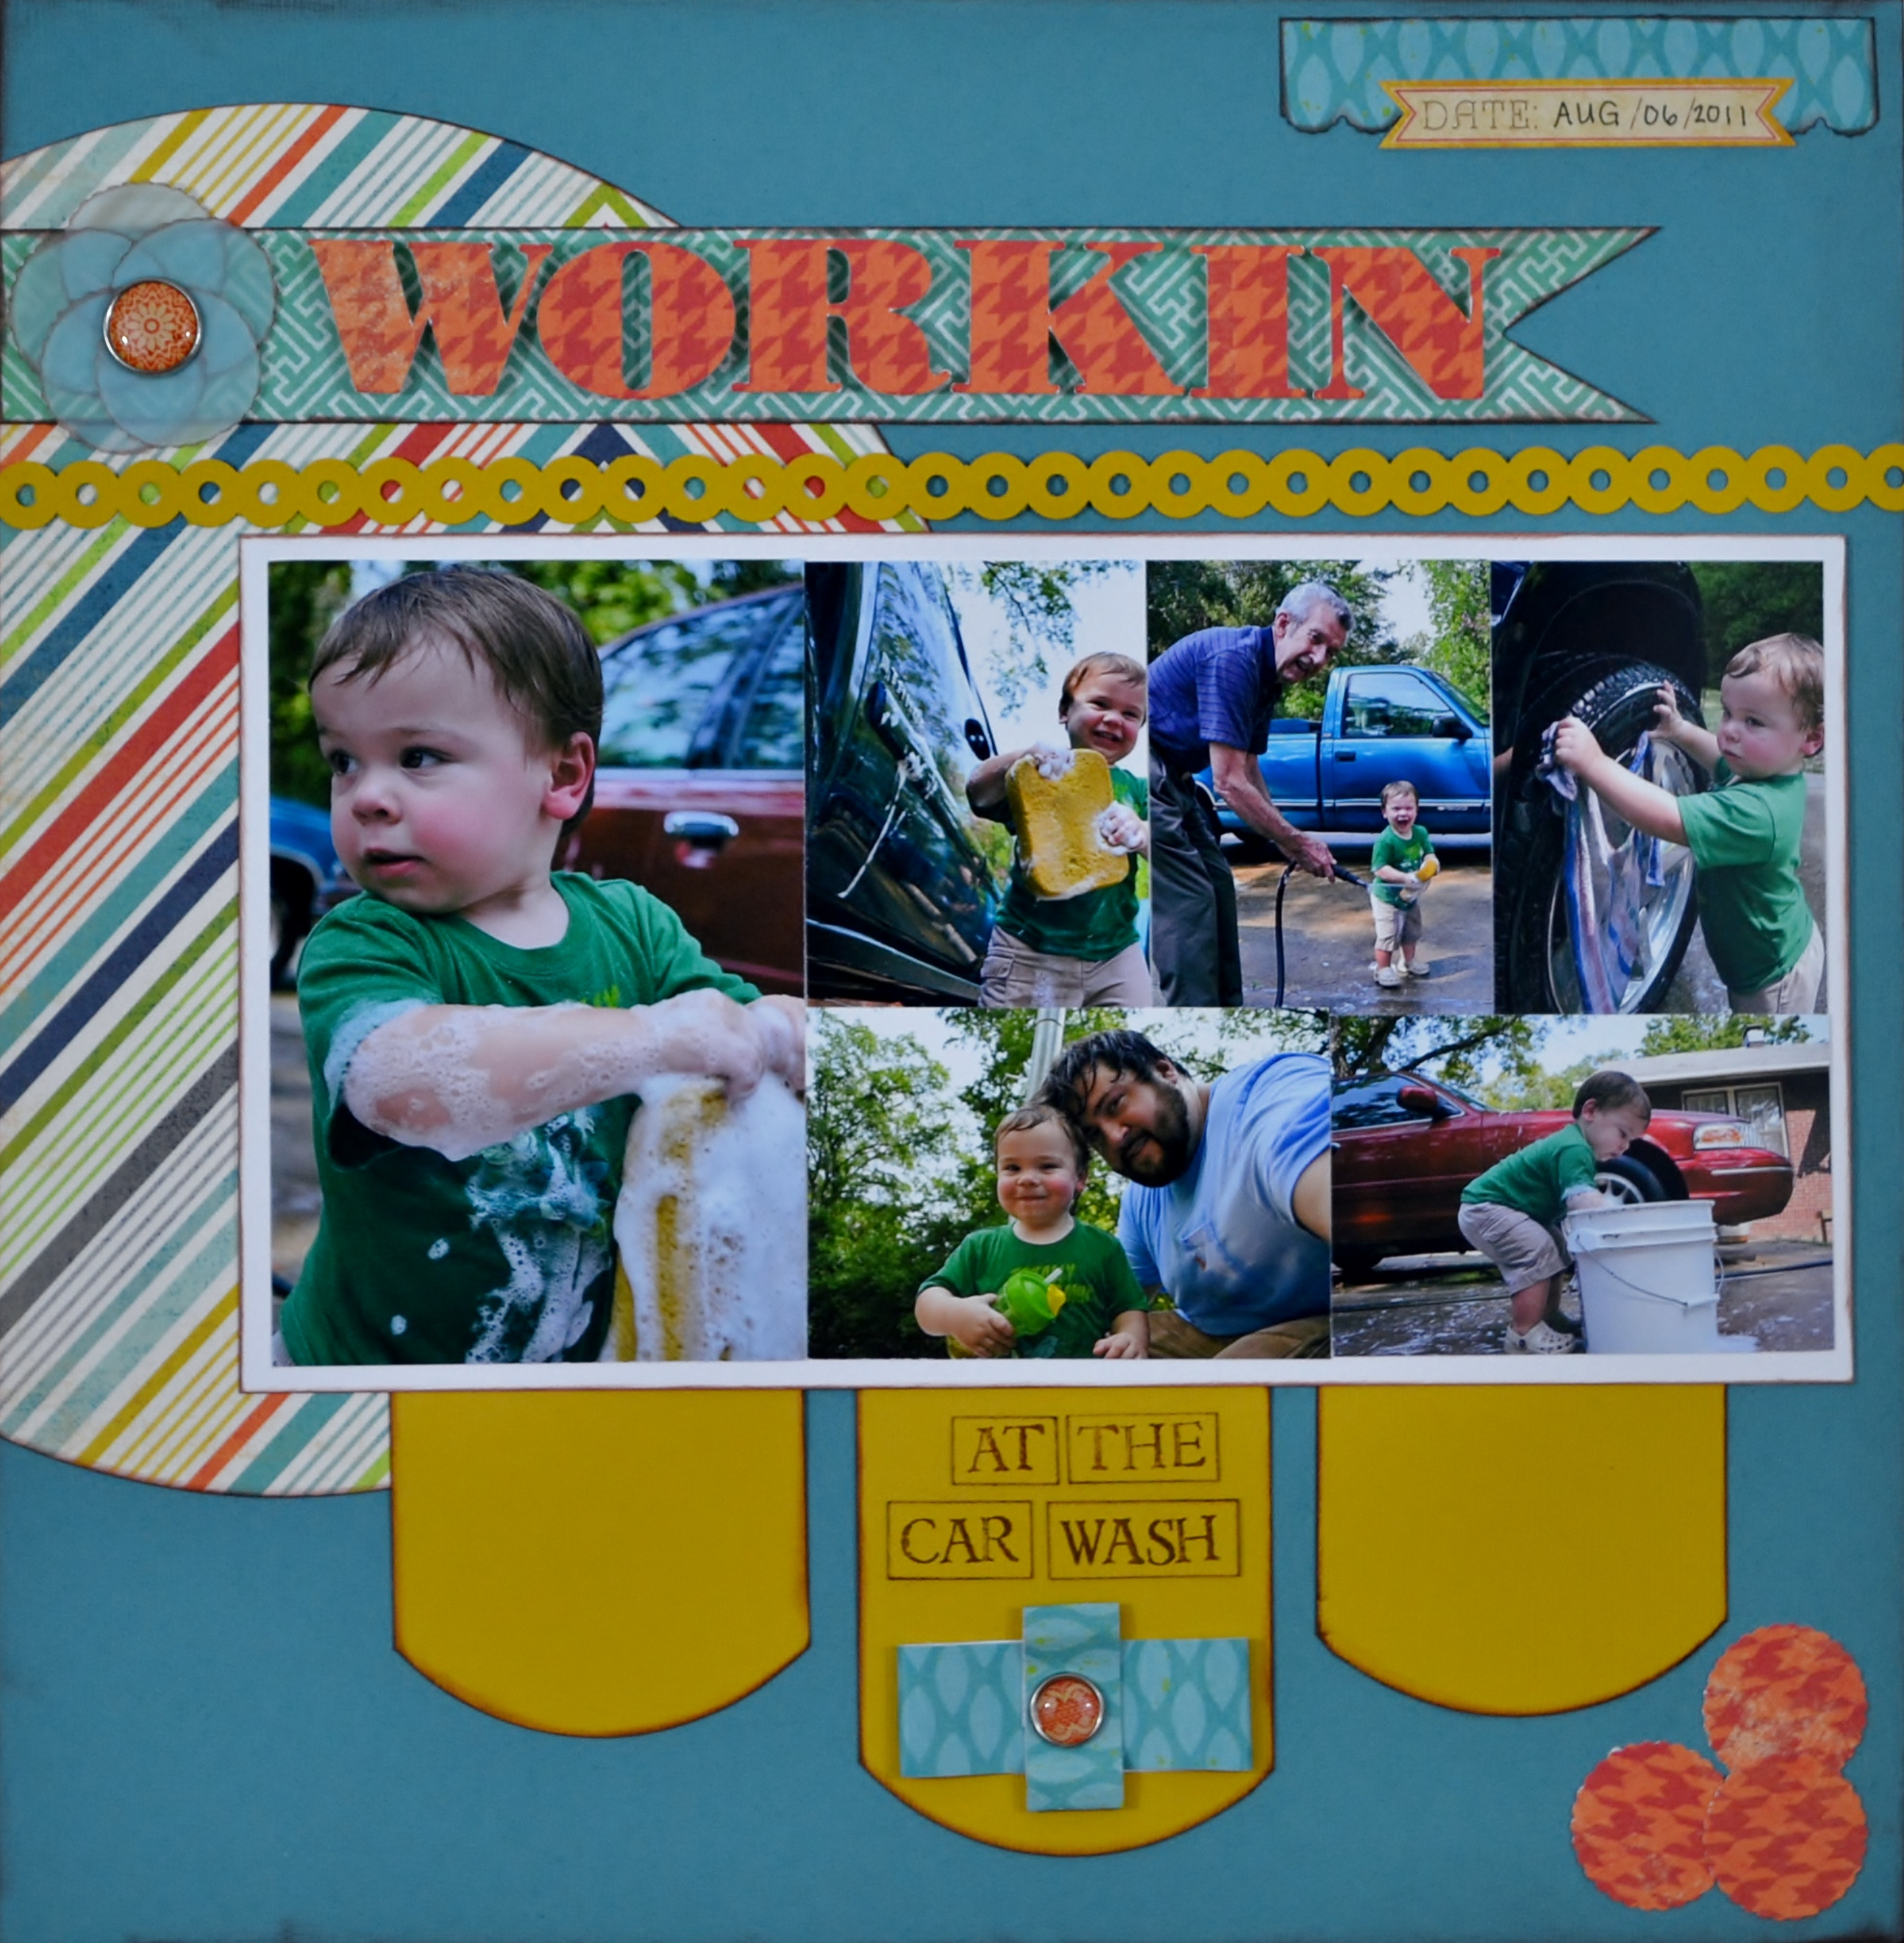 car wash, scrapbook layout, scrapbooking